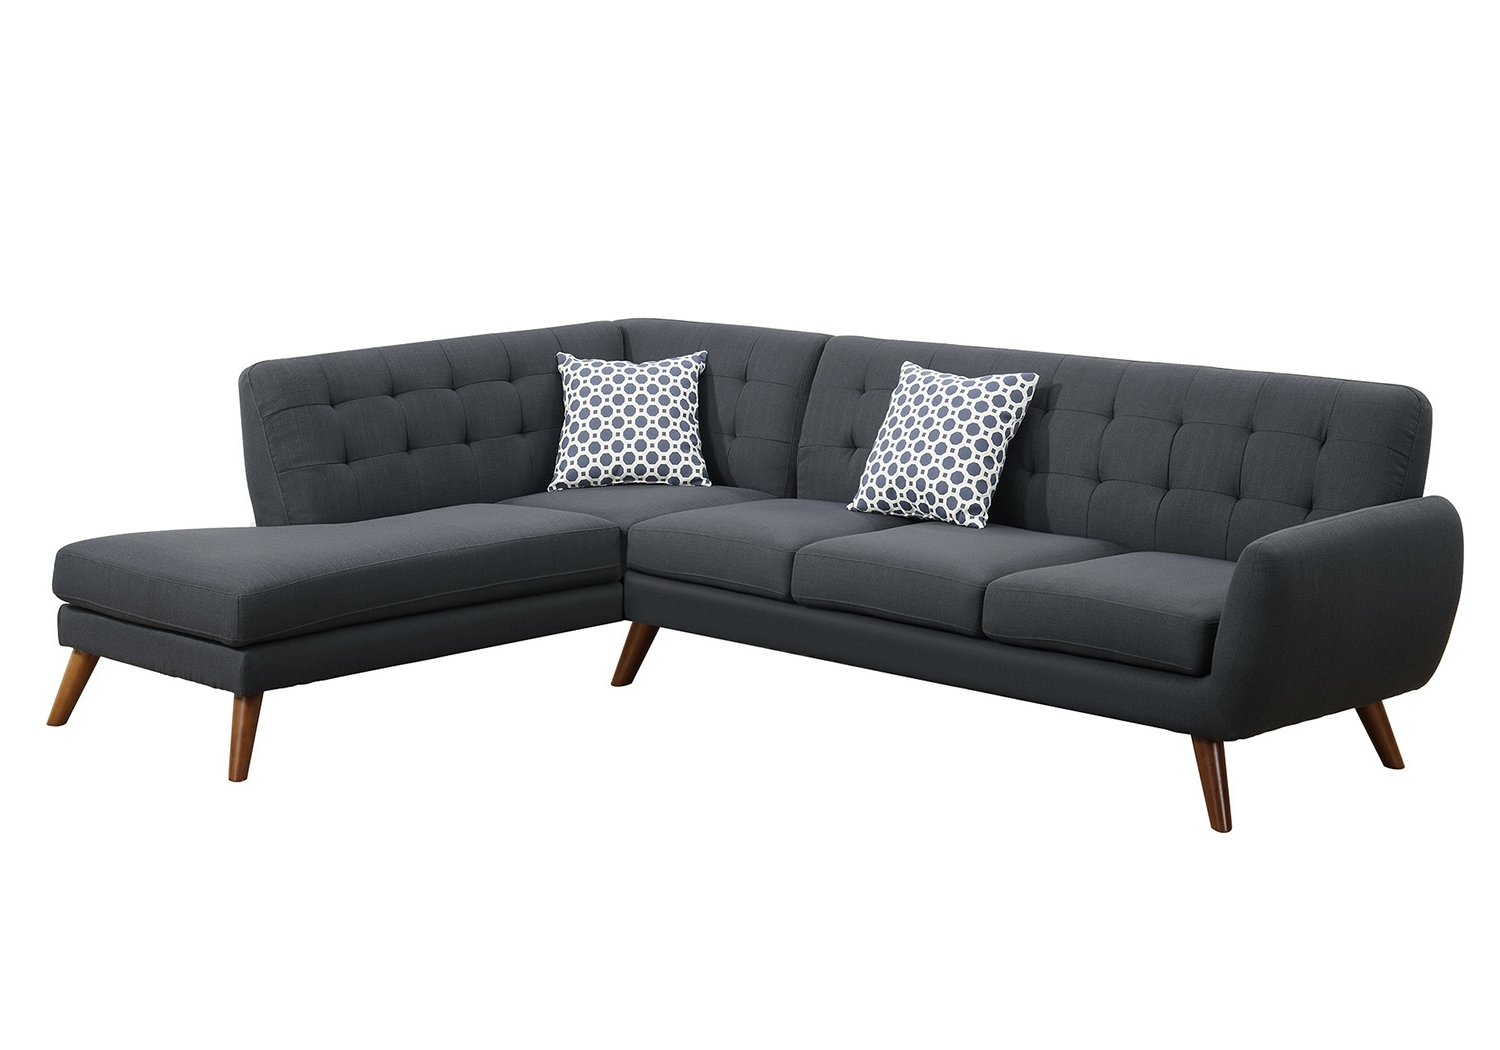 2018 Best Couches Under $1500 Inside Sectional Sofas Under  (View 2 of 15)